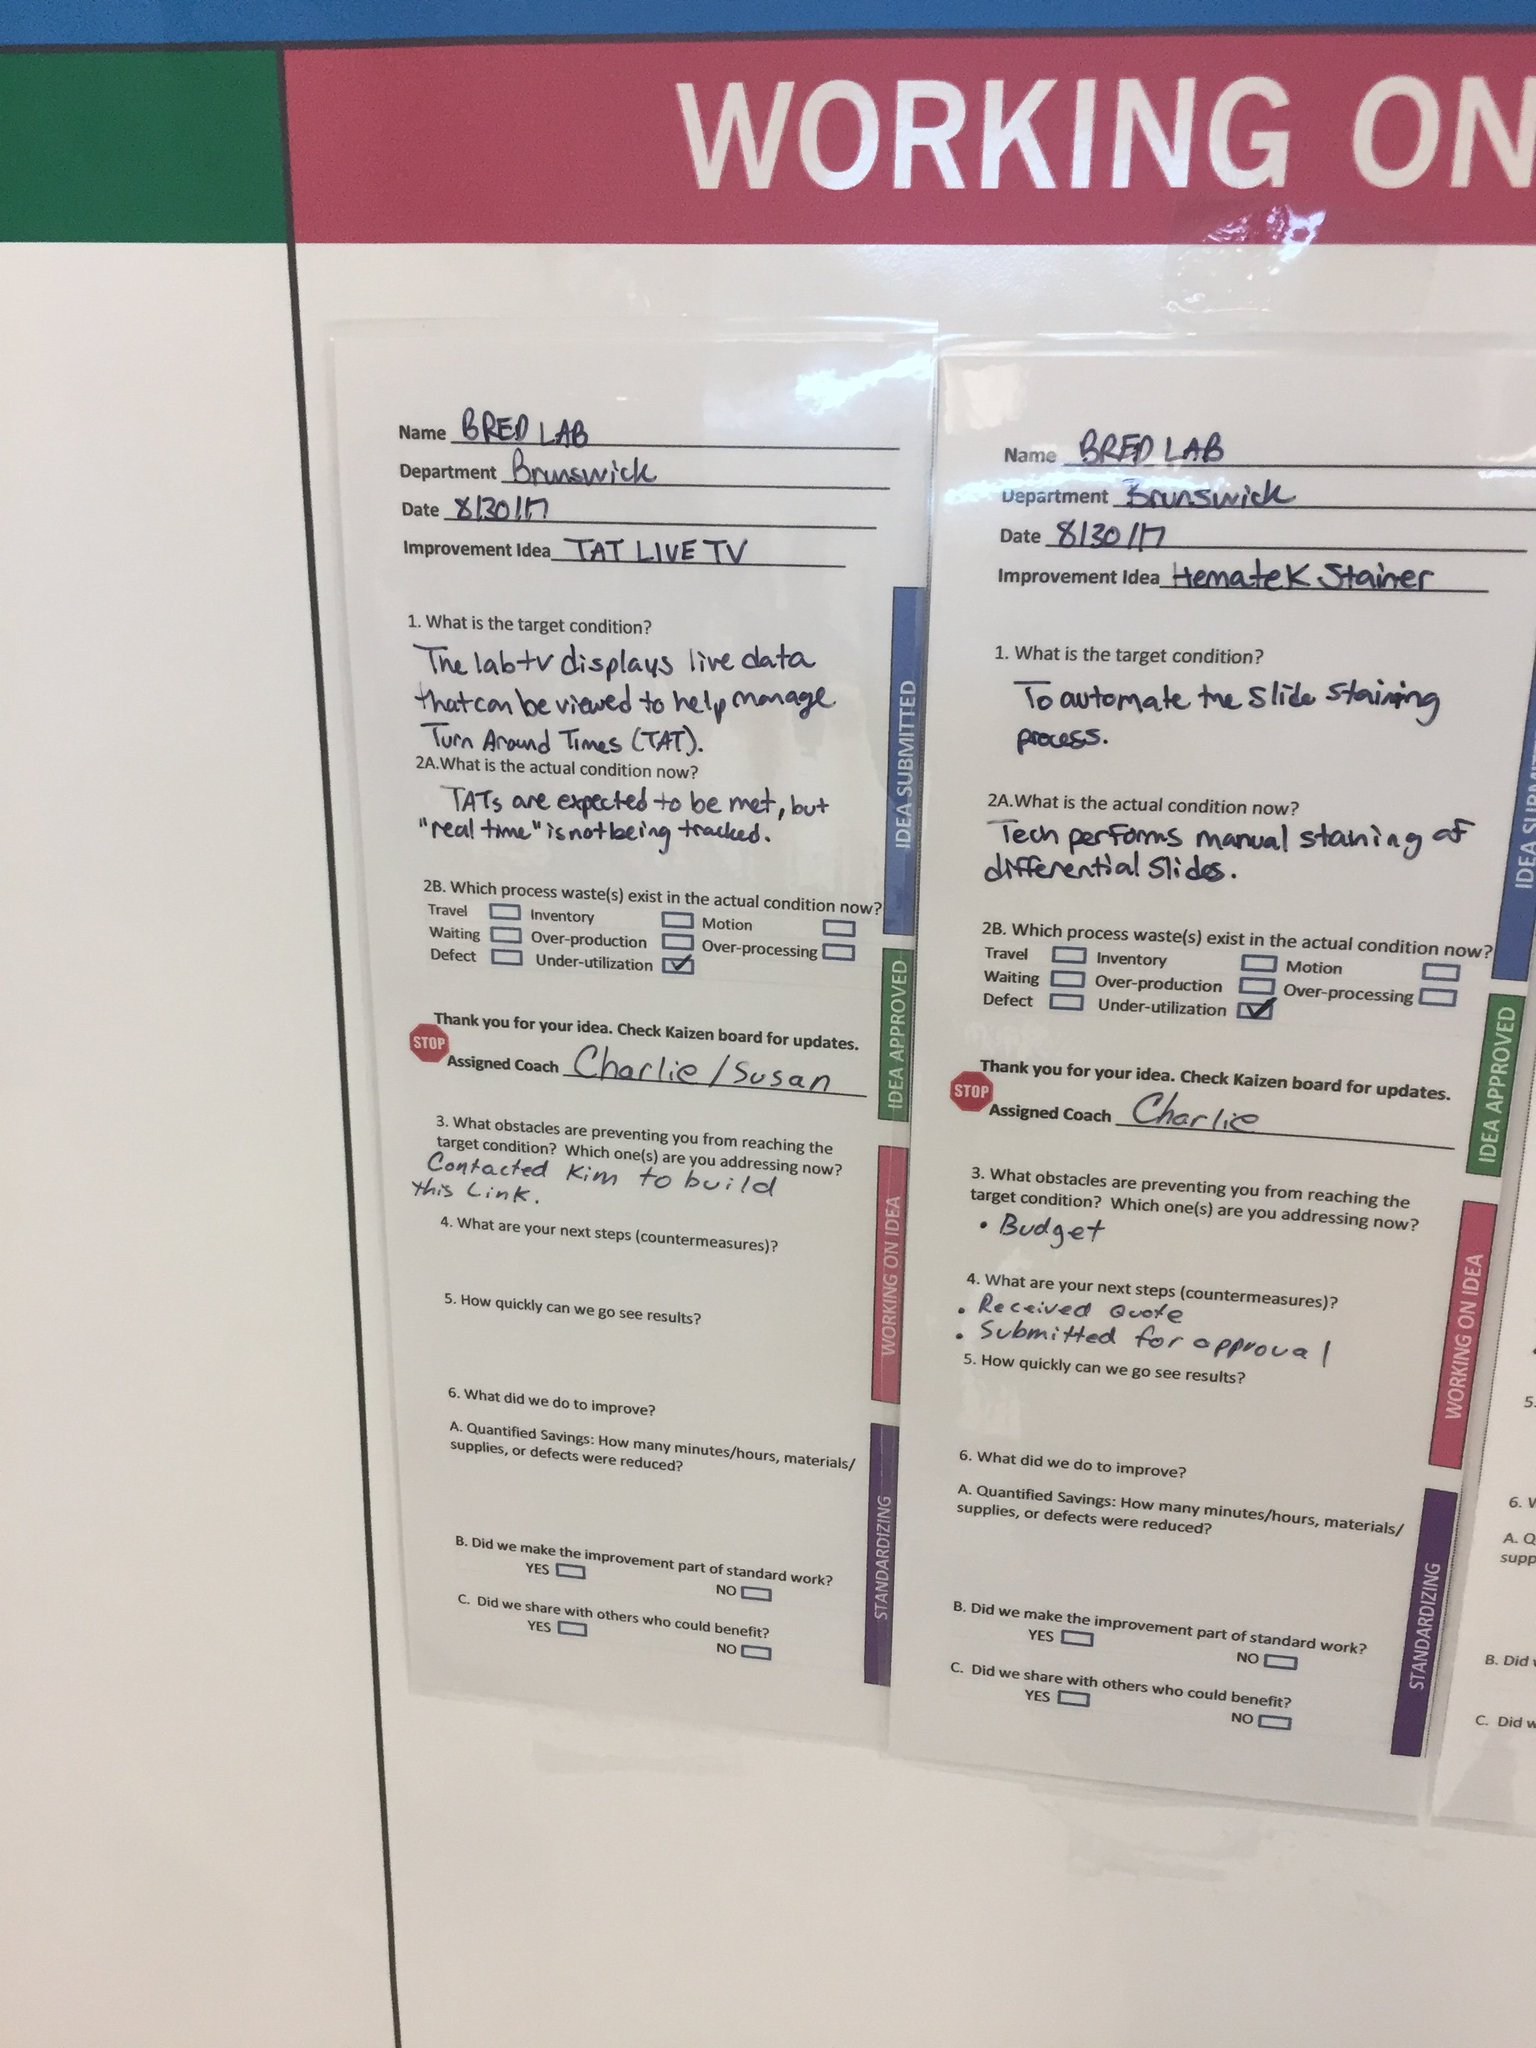 """I like the kaizen board because it makes the problems less about people and more about process"" https://t.co/nyNXnS347A"